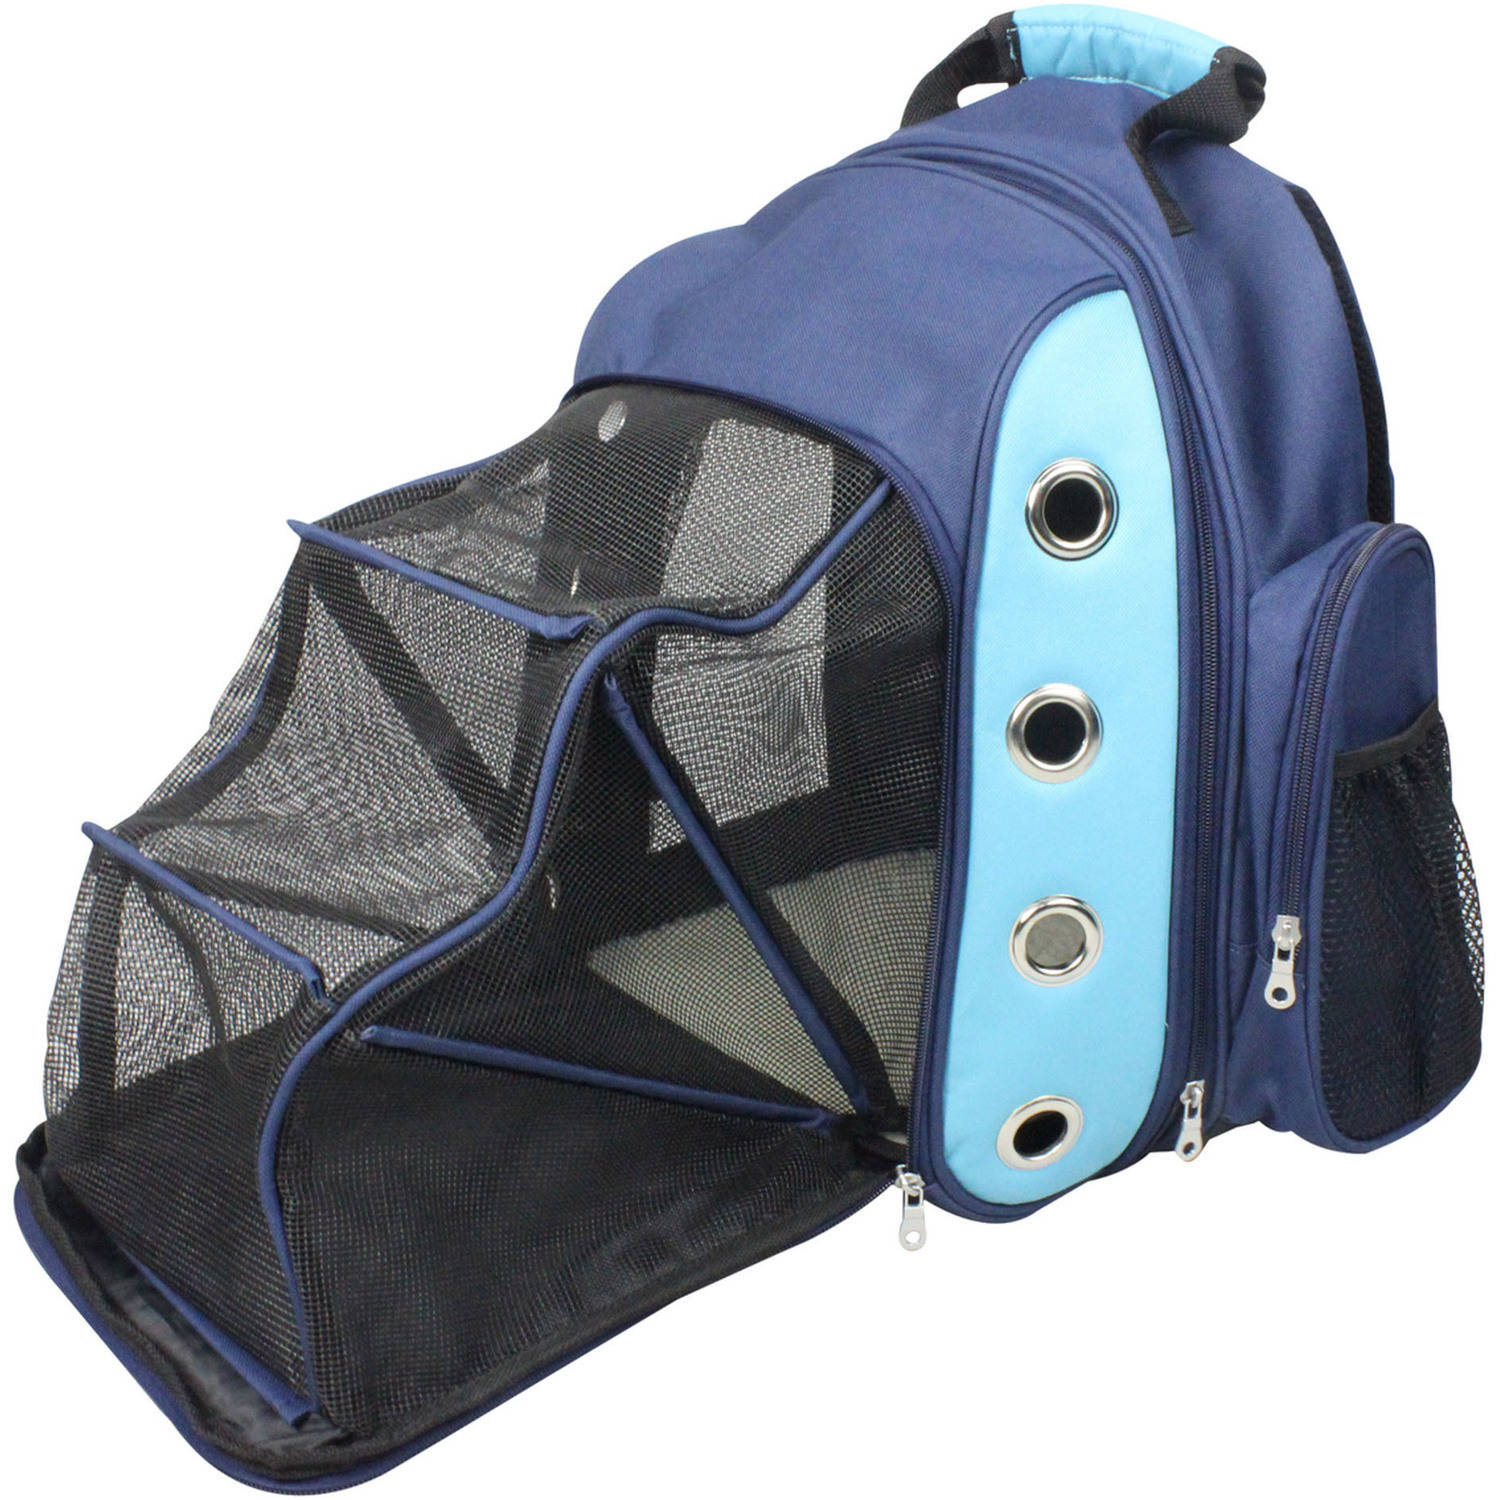 Iconic Pet FurryGo Luxury Backpack Pet Carrier with Lounge, Navy Blue